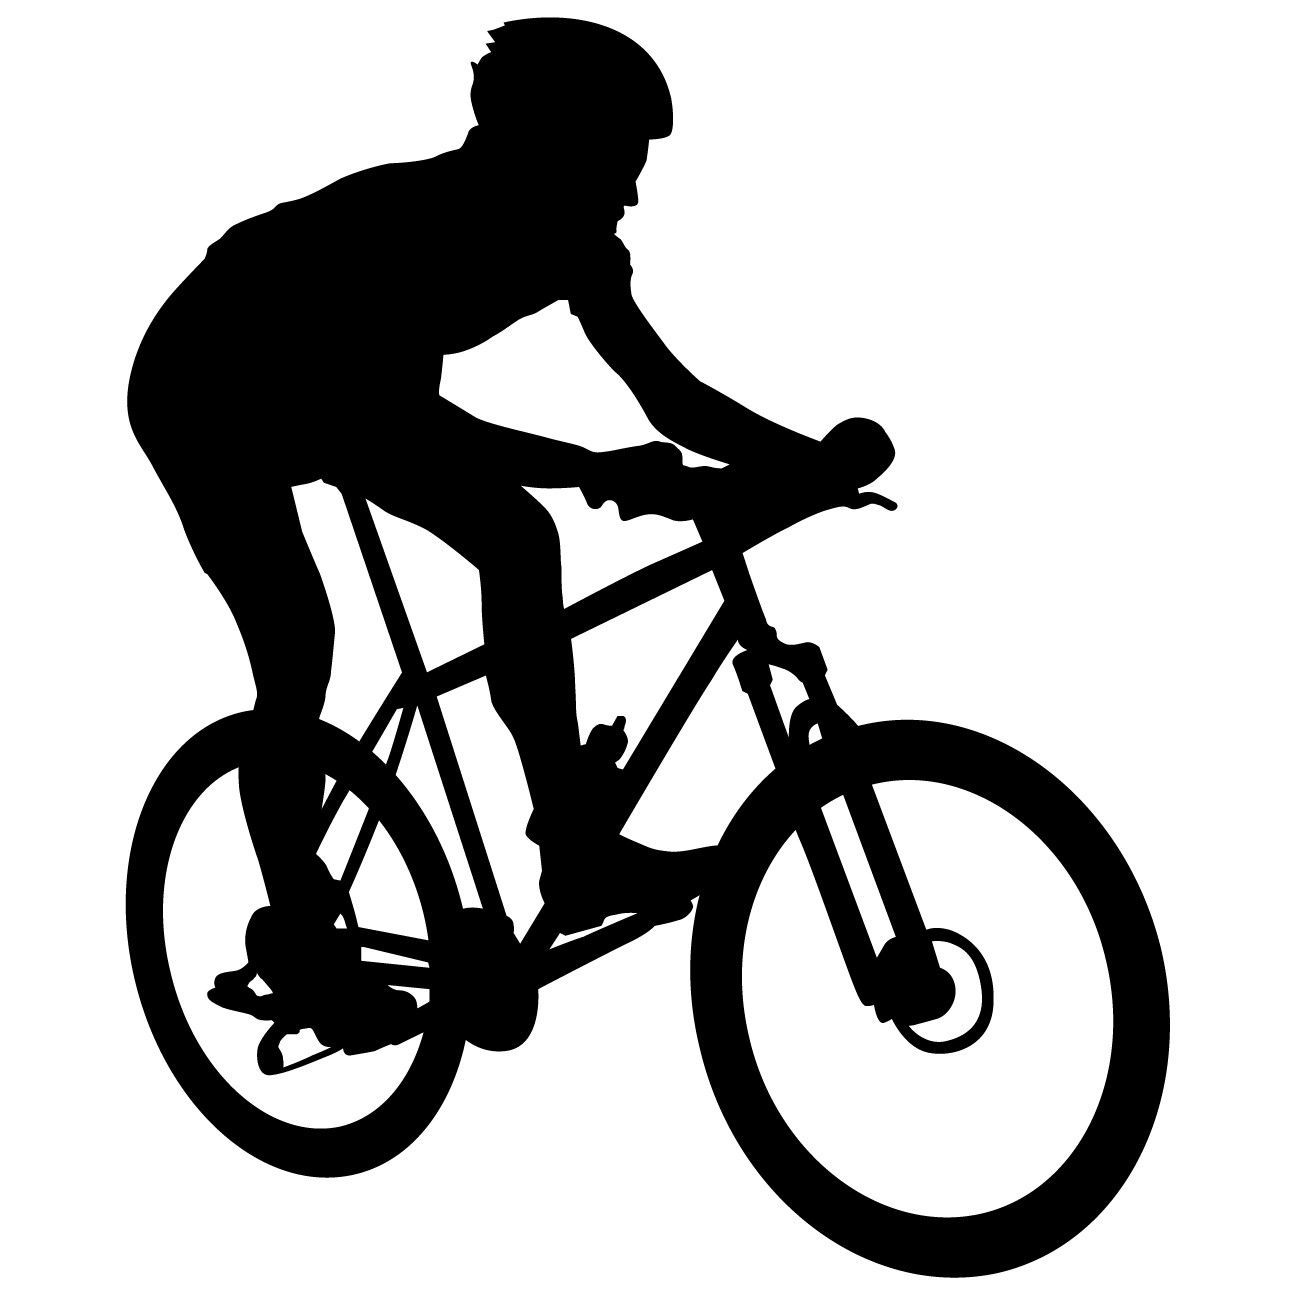 Bicycling Cycling Bicycle Wall Decal Sticker 11 | Products ...